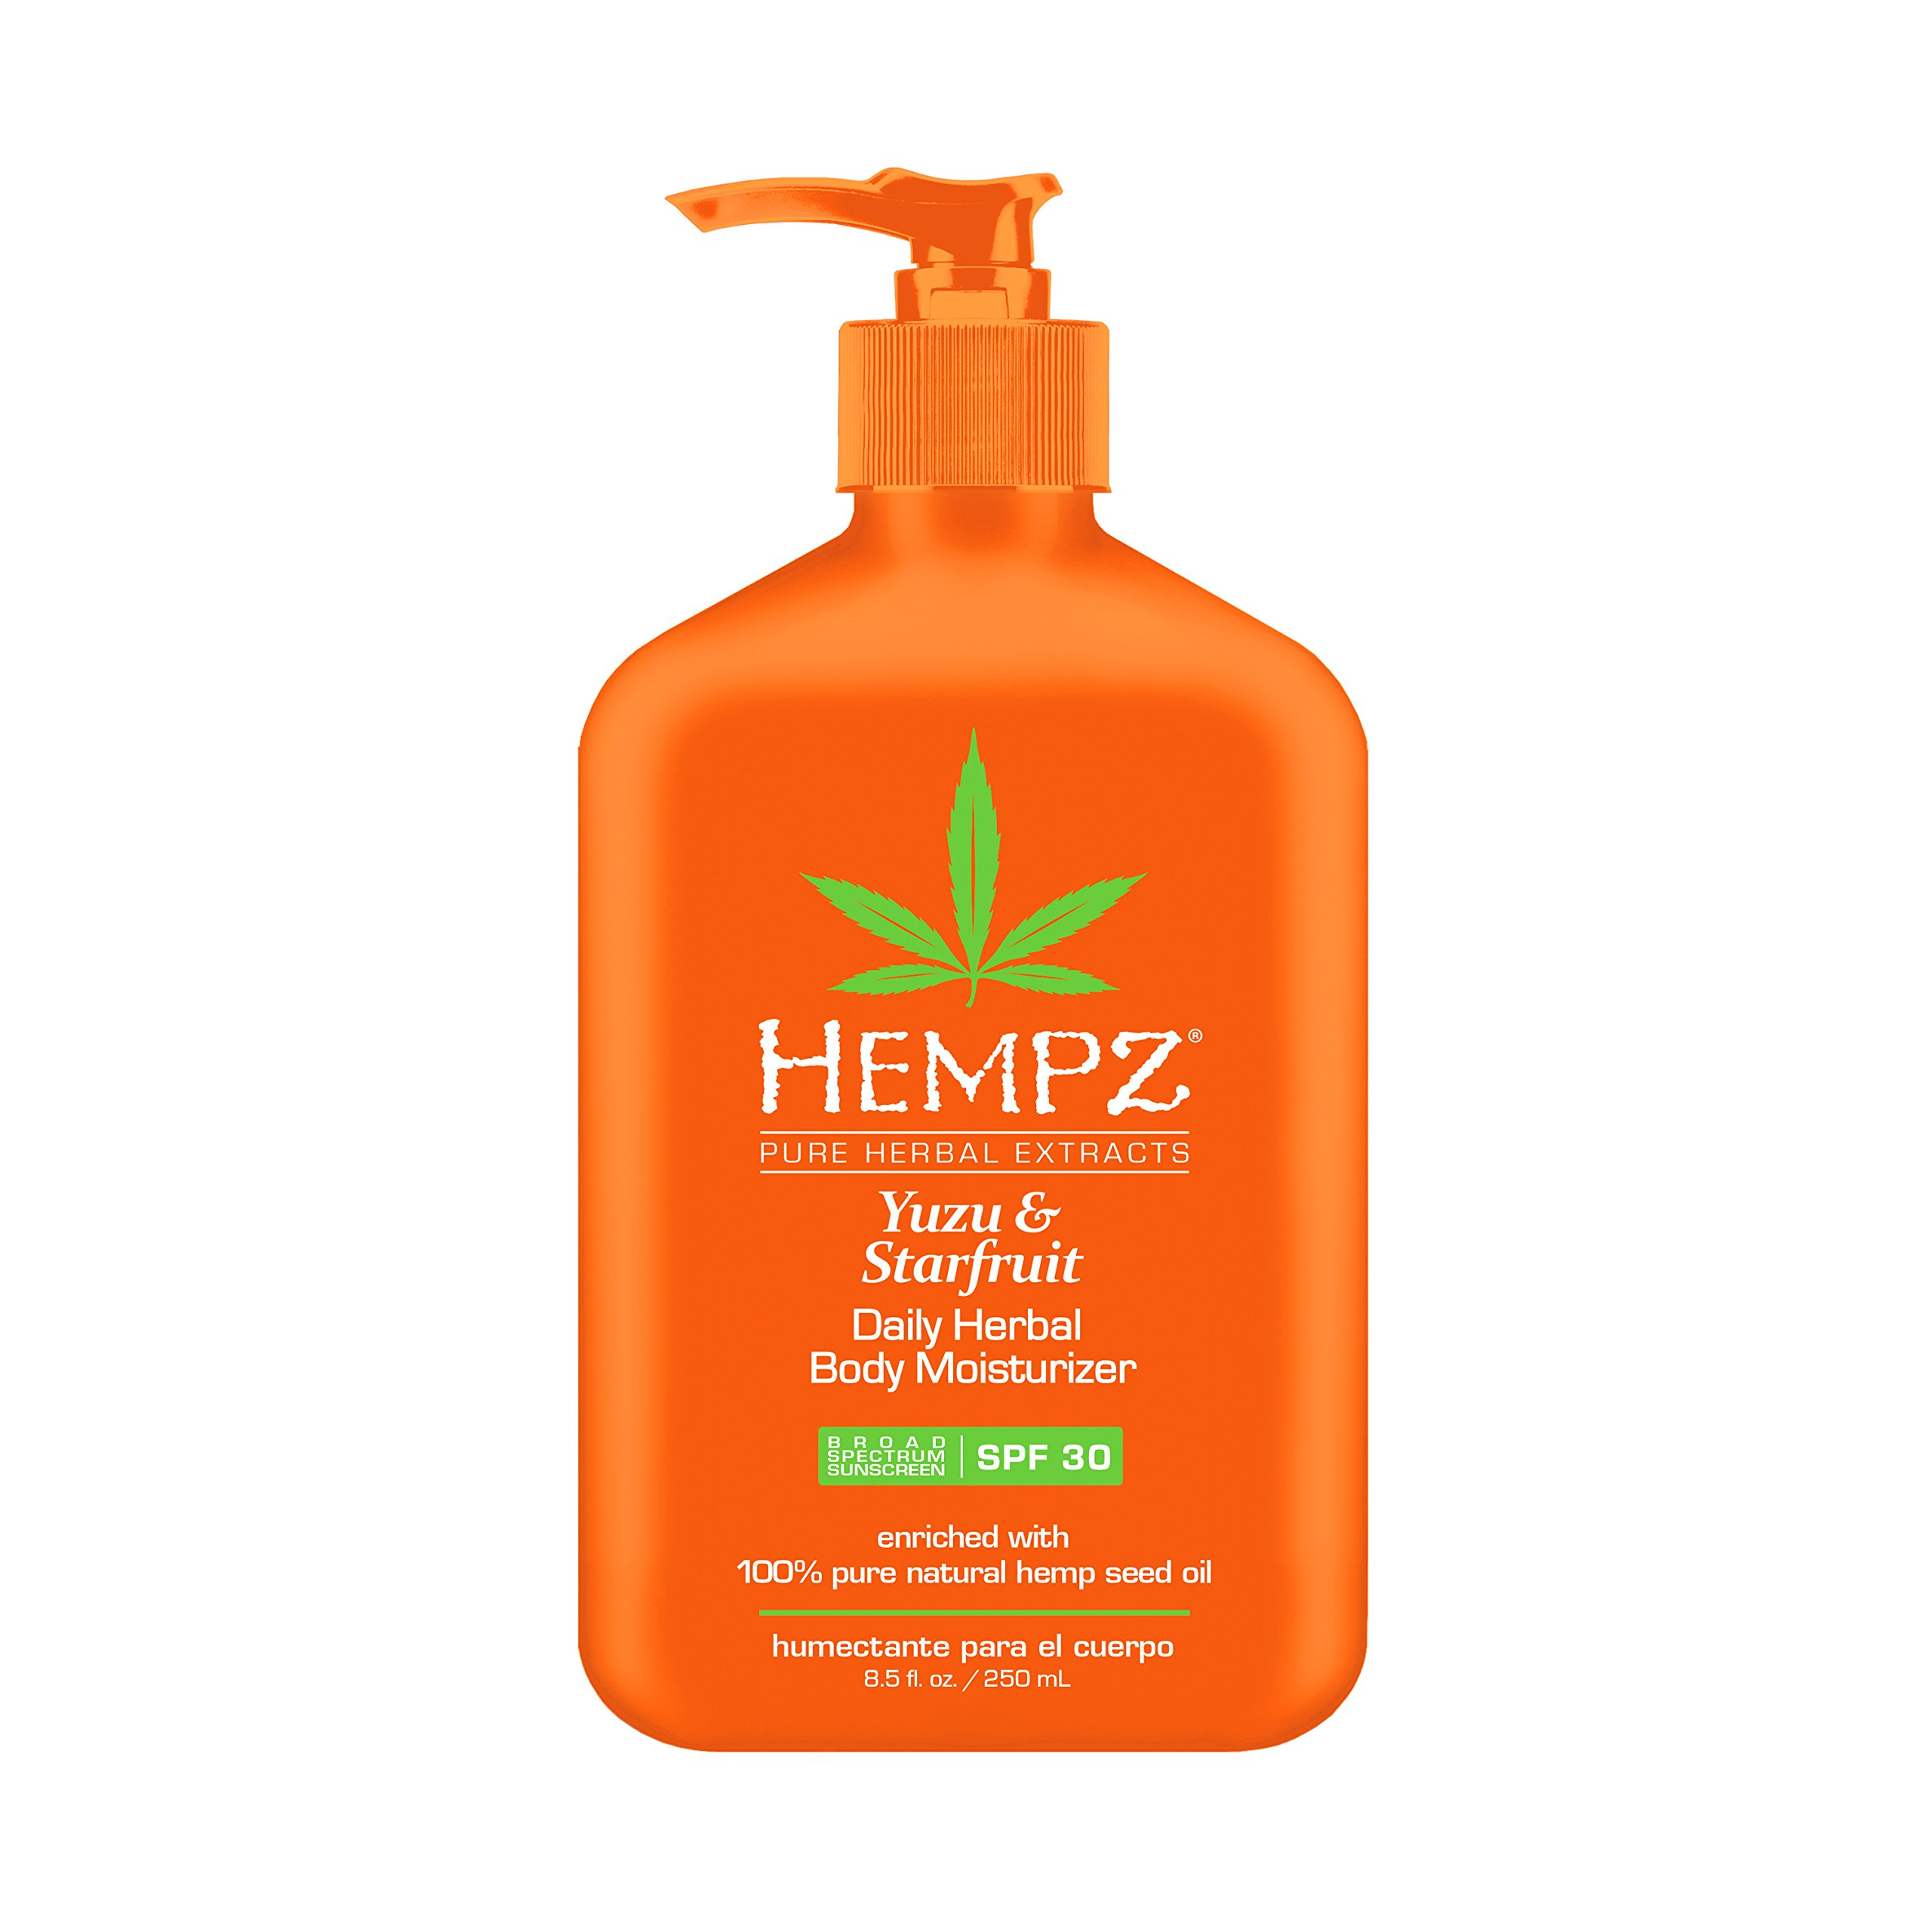 Hempz Starfruit Daily Herbal Moisturizer